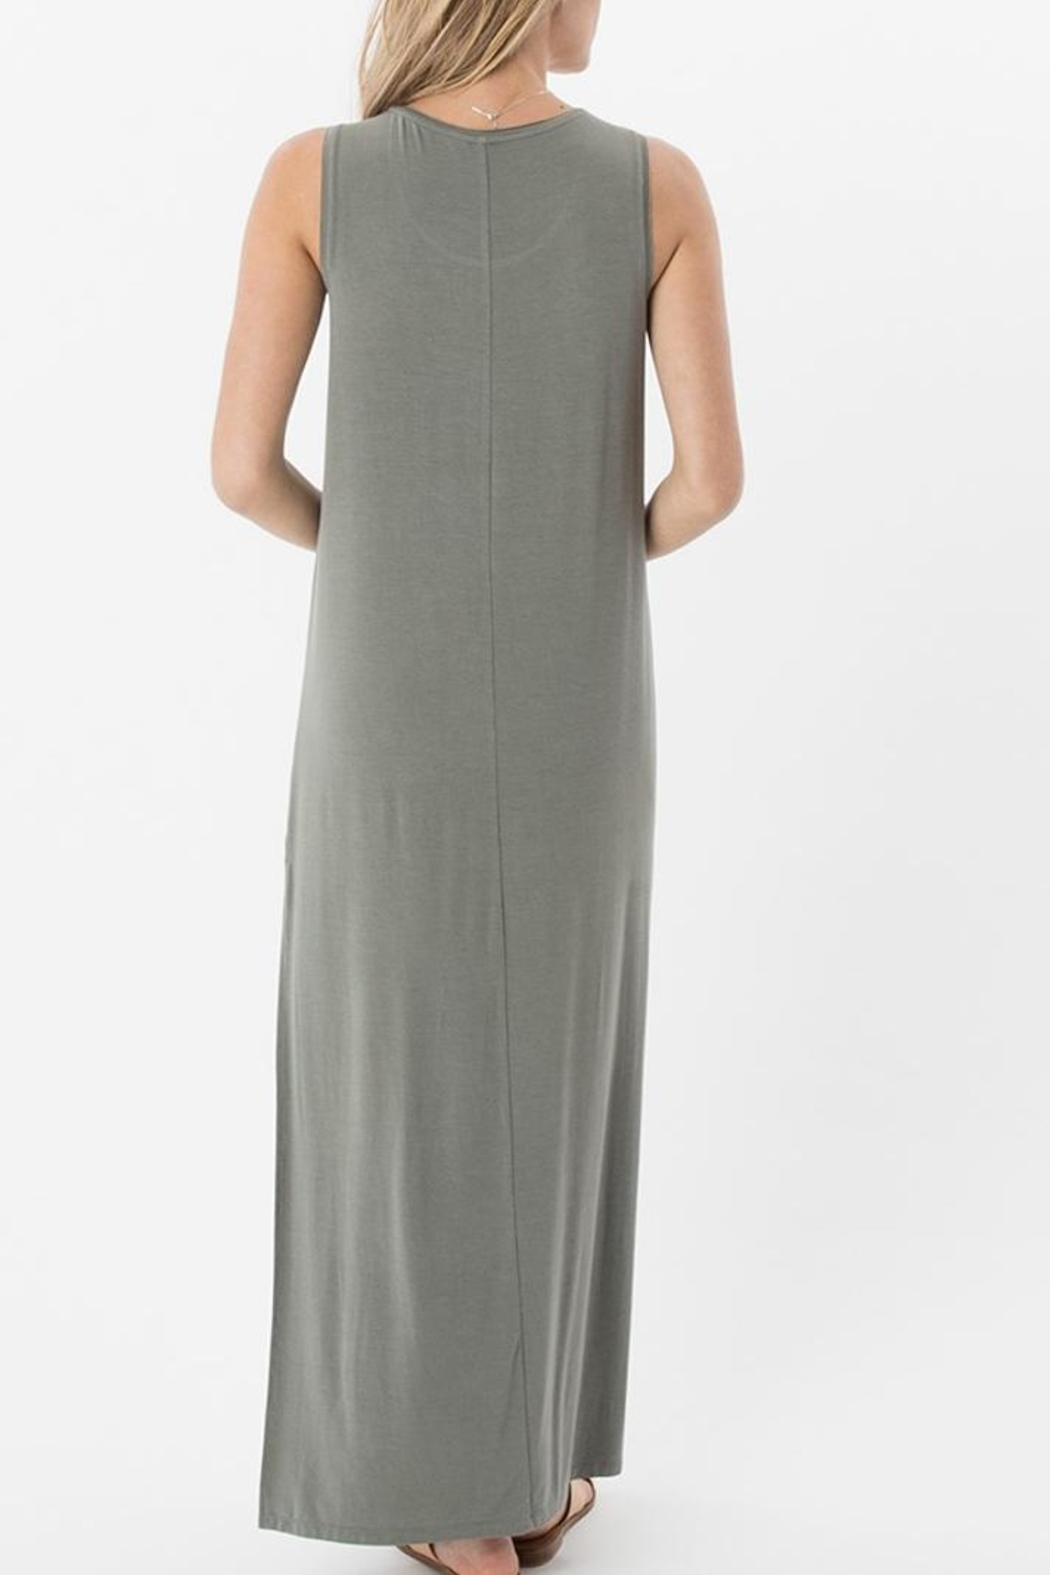 z supply High Slit Maxi Dress from Michigan by Scarborough Square ...